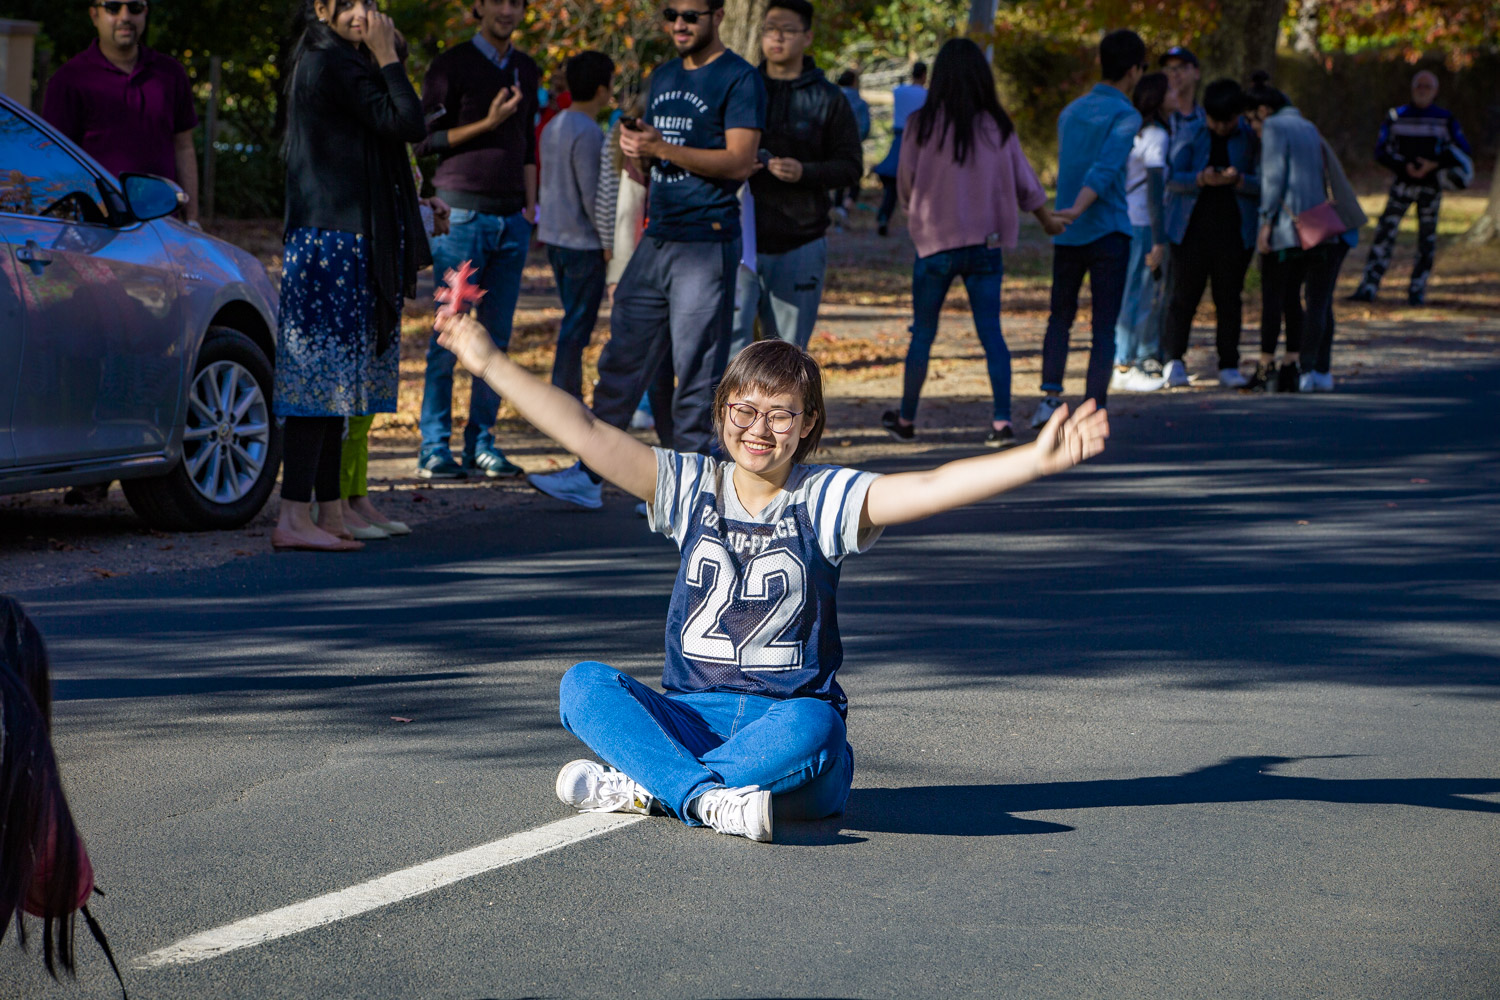 A visitor sits in the middle of the road posing for her trophy image of Macedon.